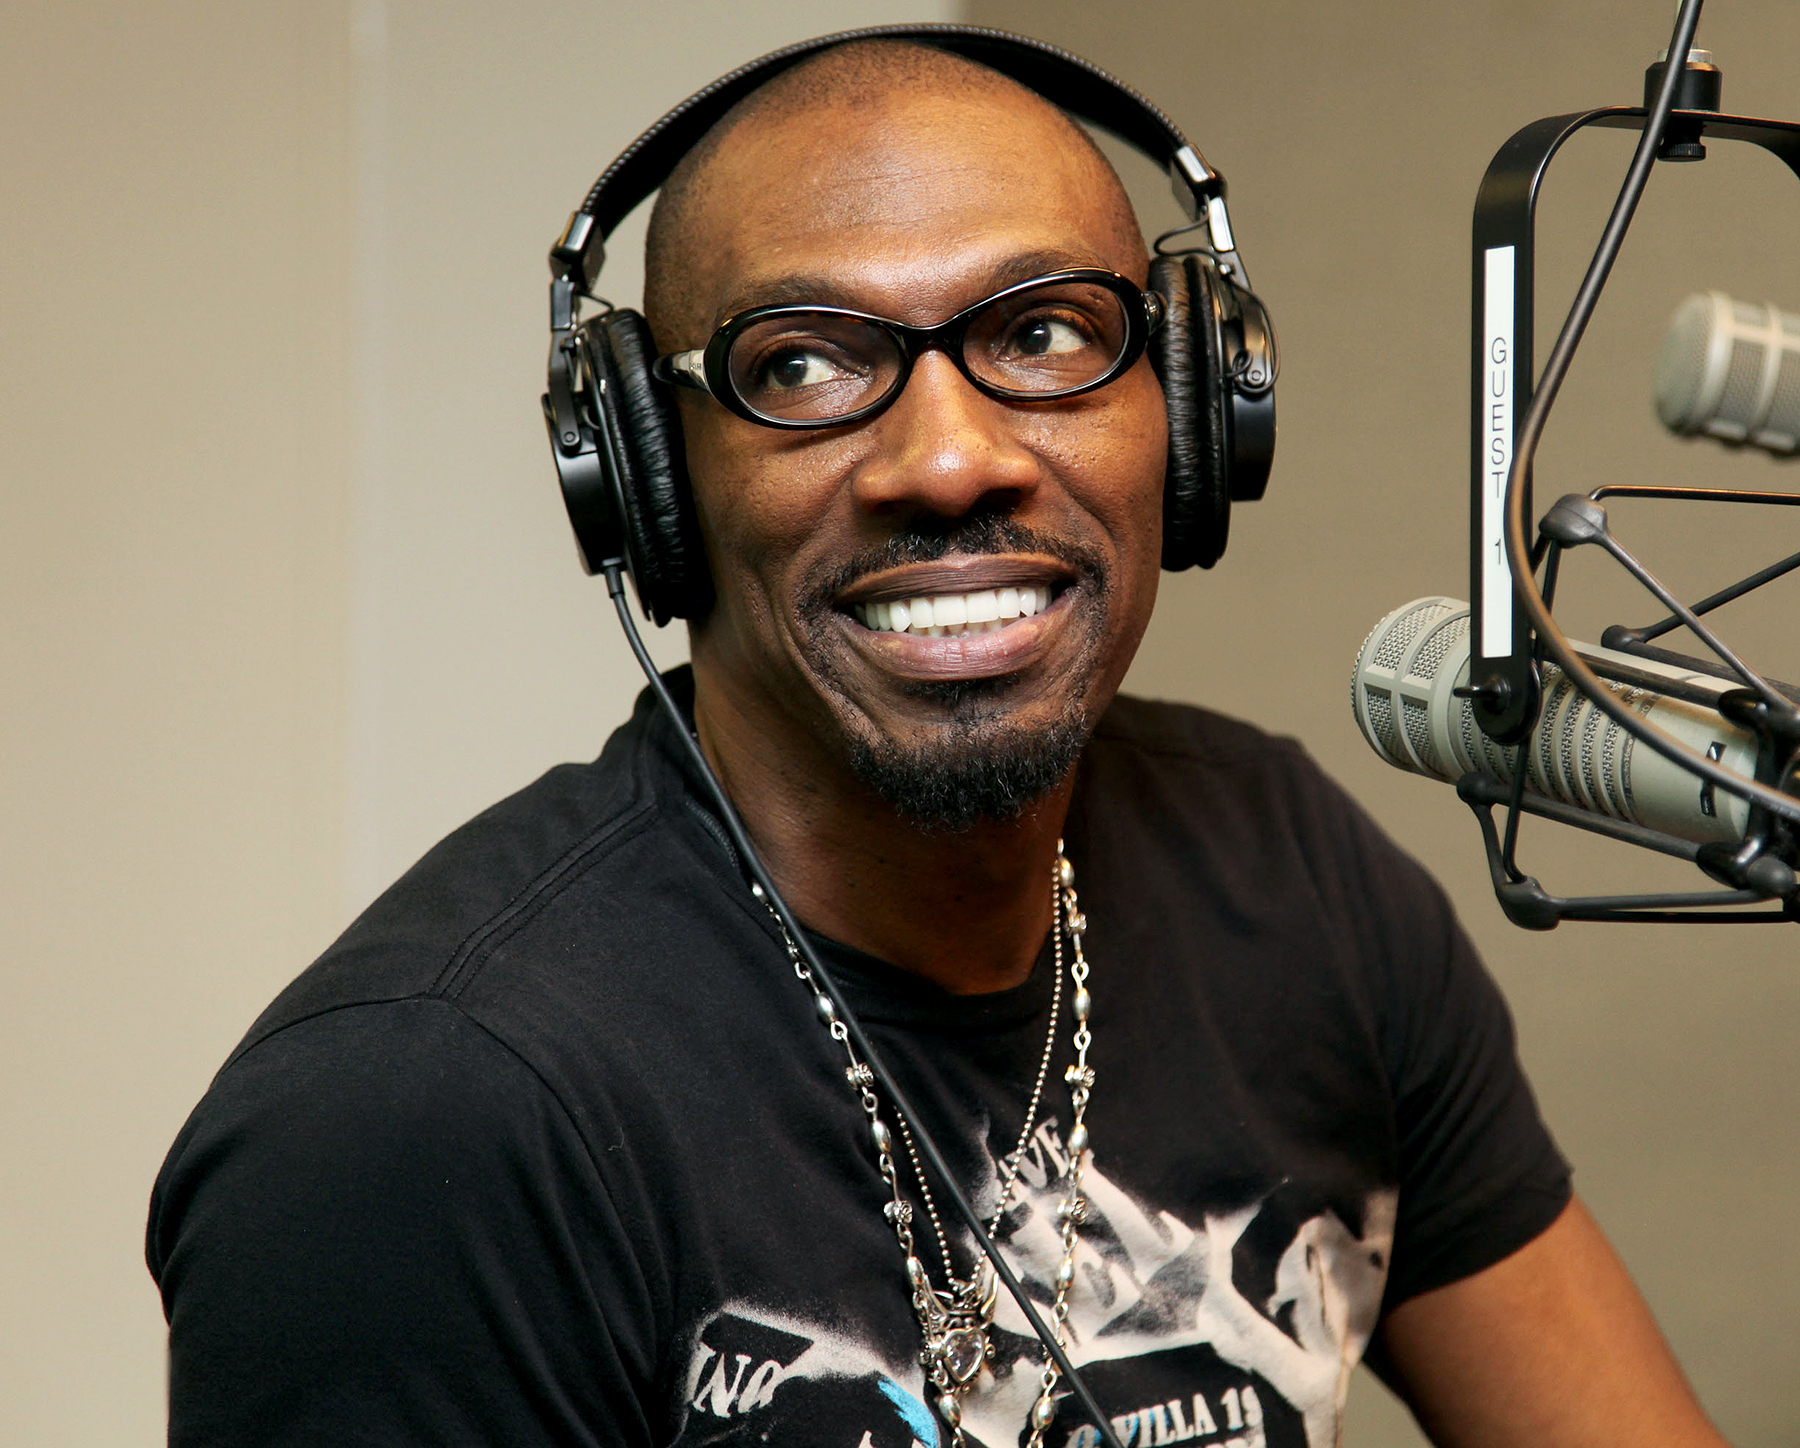 Charlie Murphy visits the SIRIUS XM Studio on June 4, 2011 in New York City.